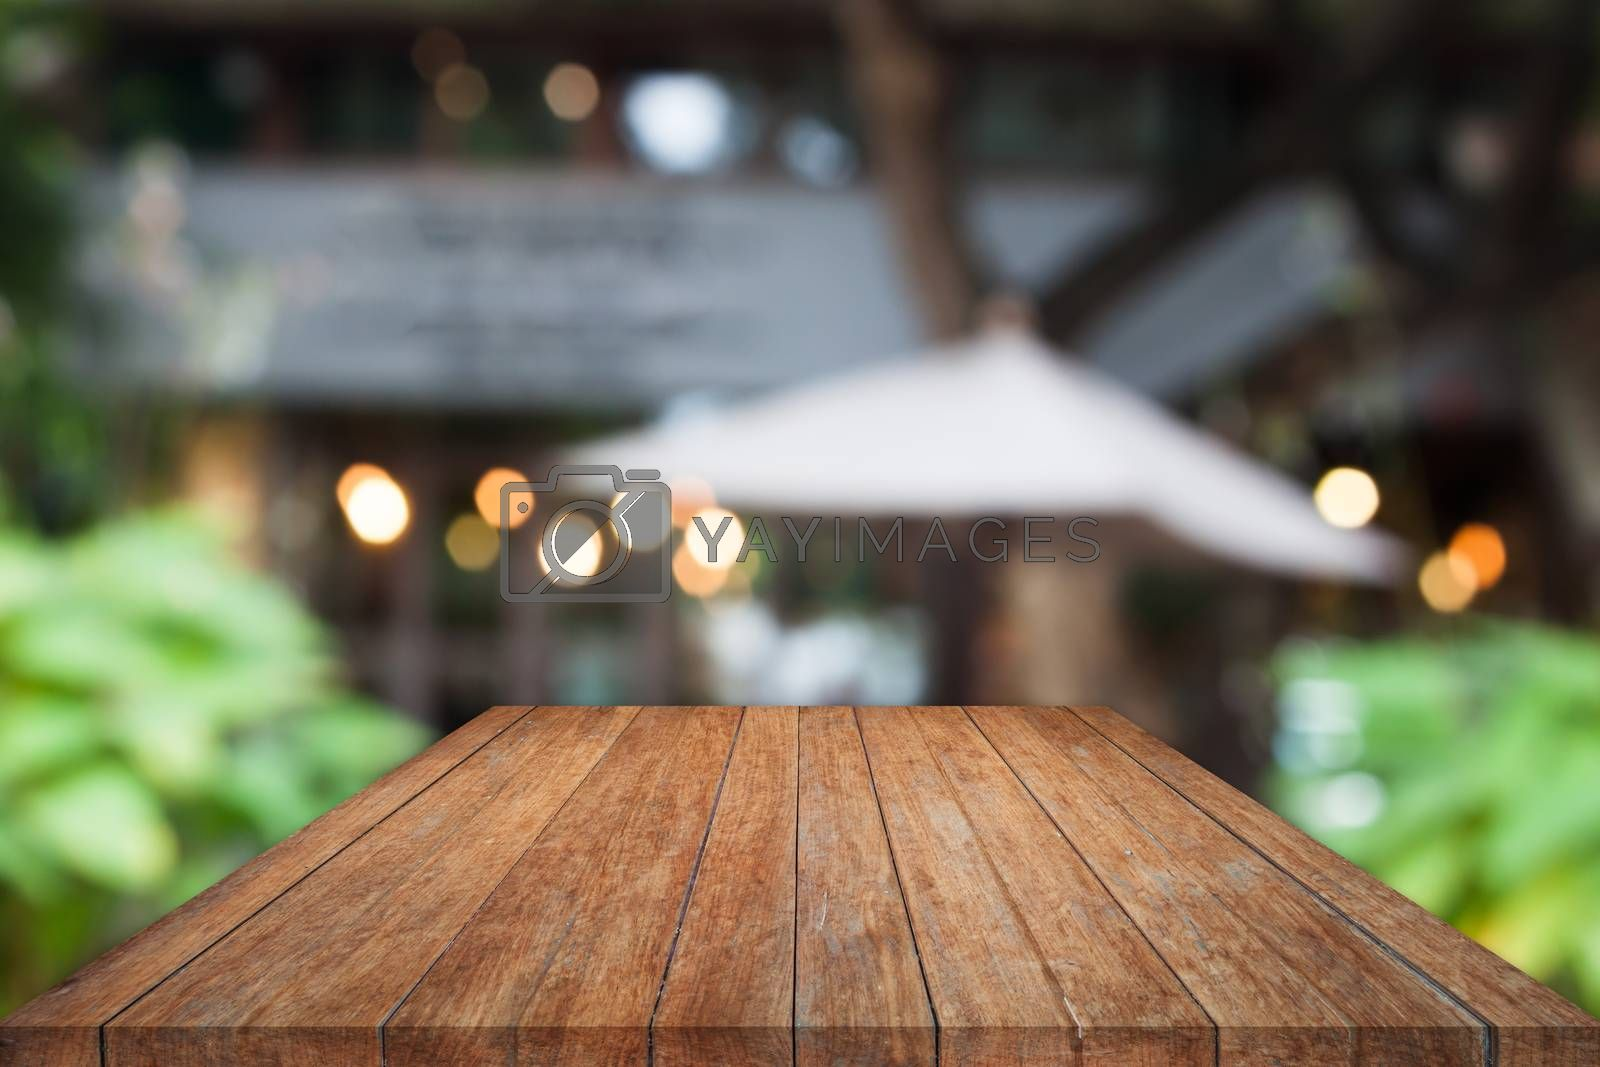 Royalty free image of Perspective wooden table top with cafe background by punsayaporn